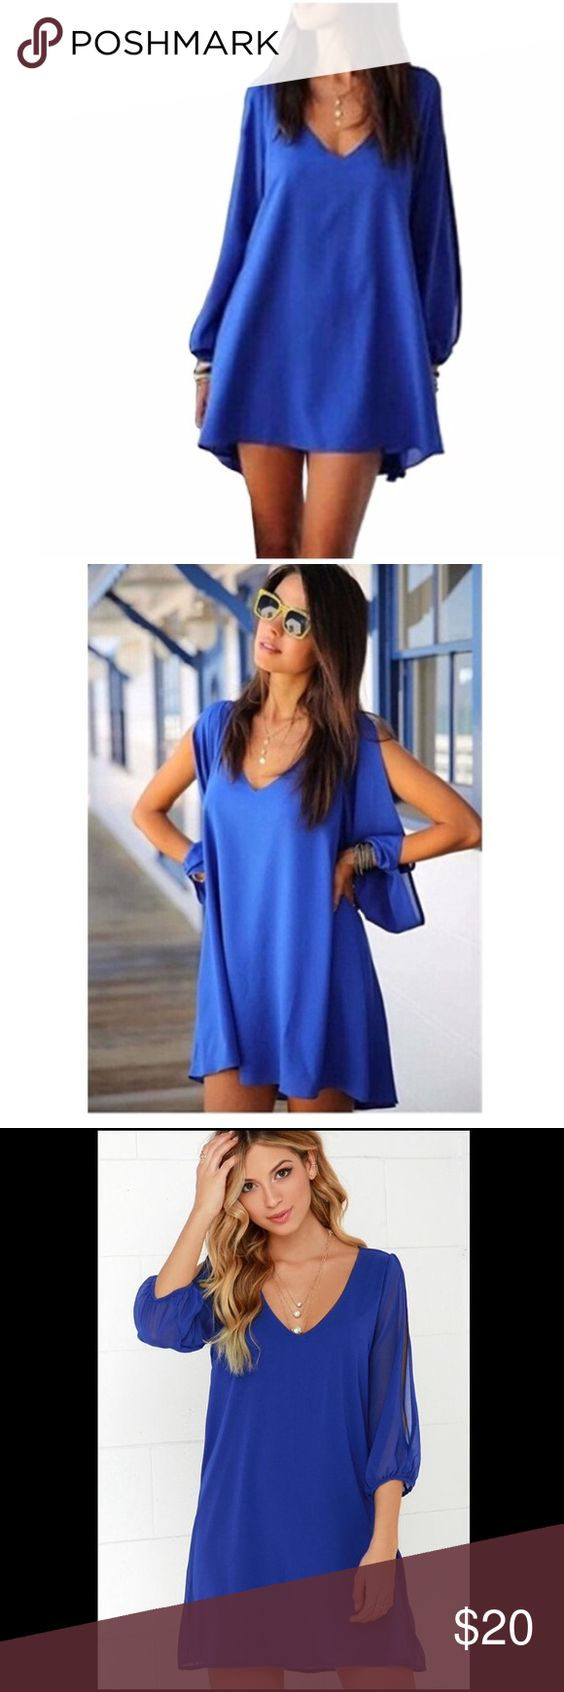 Shift Dress w/ Slit Sleeves- Royal Blue This a gently worn shift dress with slit sleeves. It is exactly like the photos pictured. It is knee length on me (I'm 5'2) but may be shorter for someone who is taller. It has no stains, tears, or holes. It comes from a smoke-free and pet-free home. This is the perfect dress for spring, summer, and fall. Pair it with heels, flats, and sandals and catch the eyes of everyone! Dresses